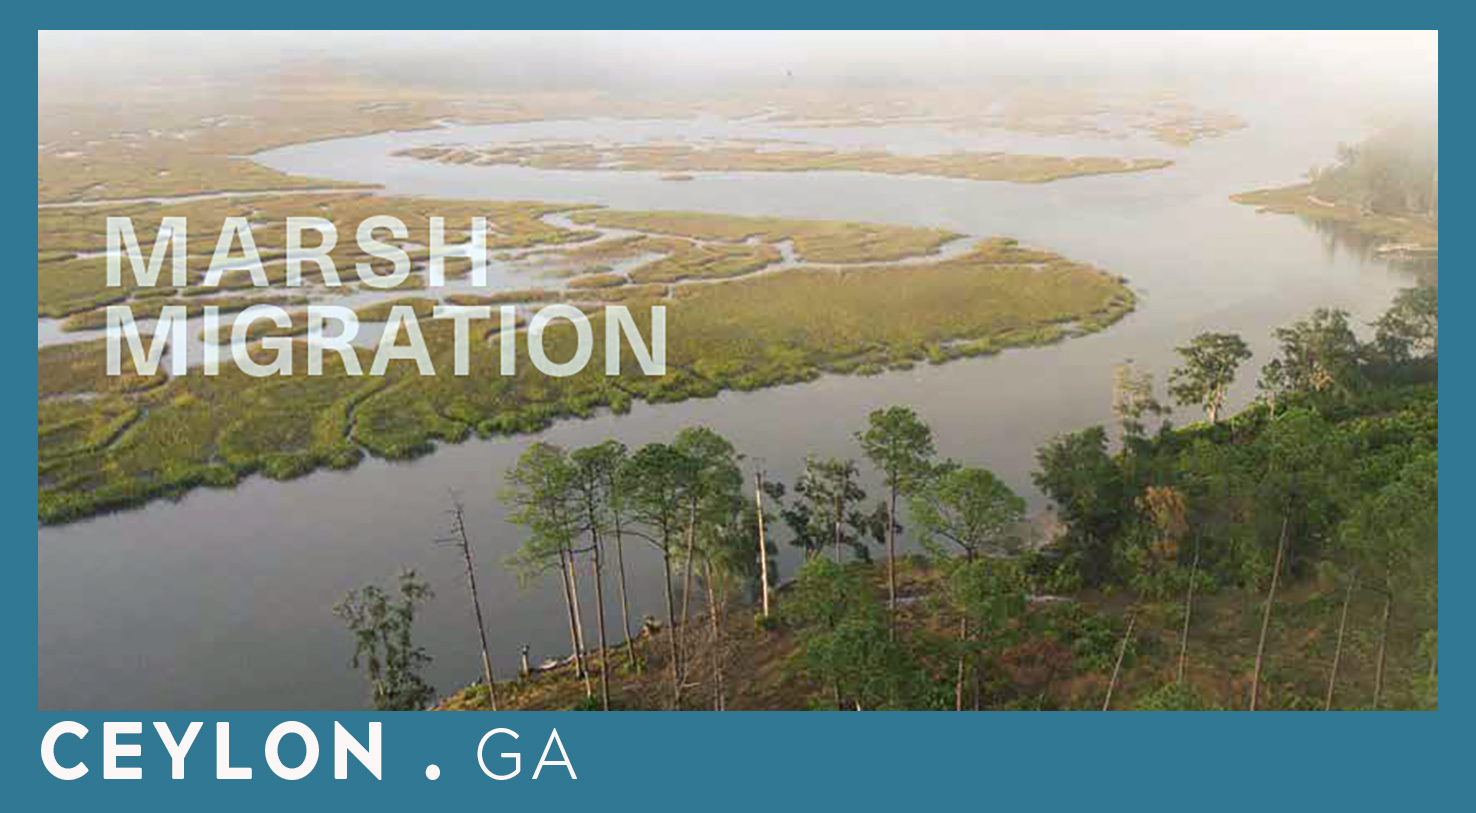 The 16,000-acre Ceylon tract, one of the last large, undeveloped, unprotected Atlantic shoreline properties, was in imminent danger of development before its protection by OSI and The Conservation Fund. Because the topography of the coastal Georgia property features a rare, gradual rise in elevation, it will prove critical for salt marsh migration, buffering habitat and local municipalities alike as a changing climate causes sea levels to rise. Ceylon's connection to more than 30,000 acres of similar habitat on and around Cumberland Island National Seashore will help maintain the long-term integrity of invaluable ecology on the property, which is also home to longleaf pine habitat and the densest population of federally endangered gopher tortoises in Georgia.